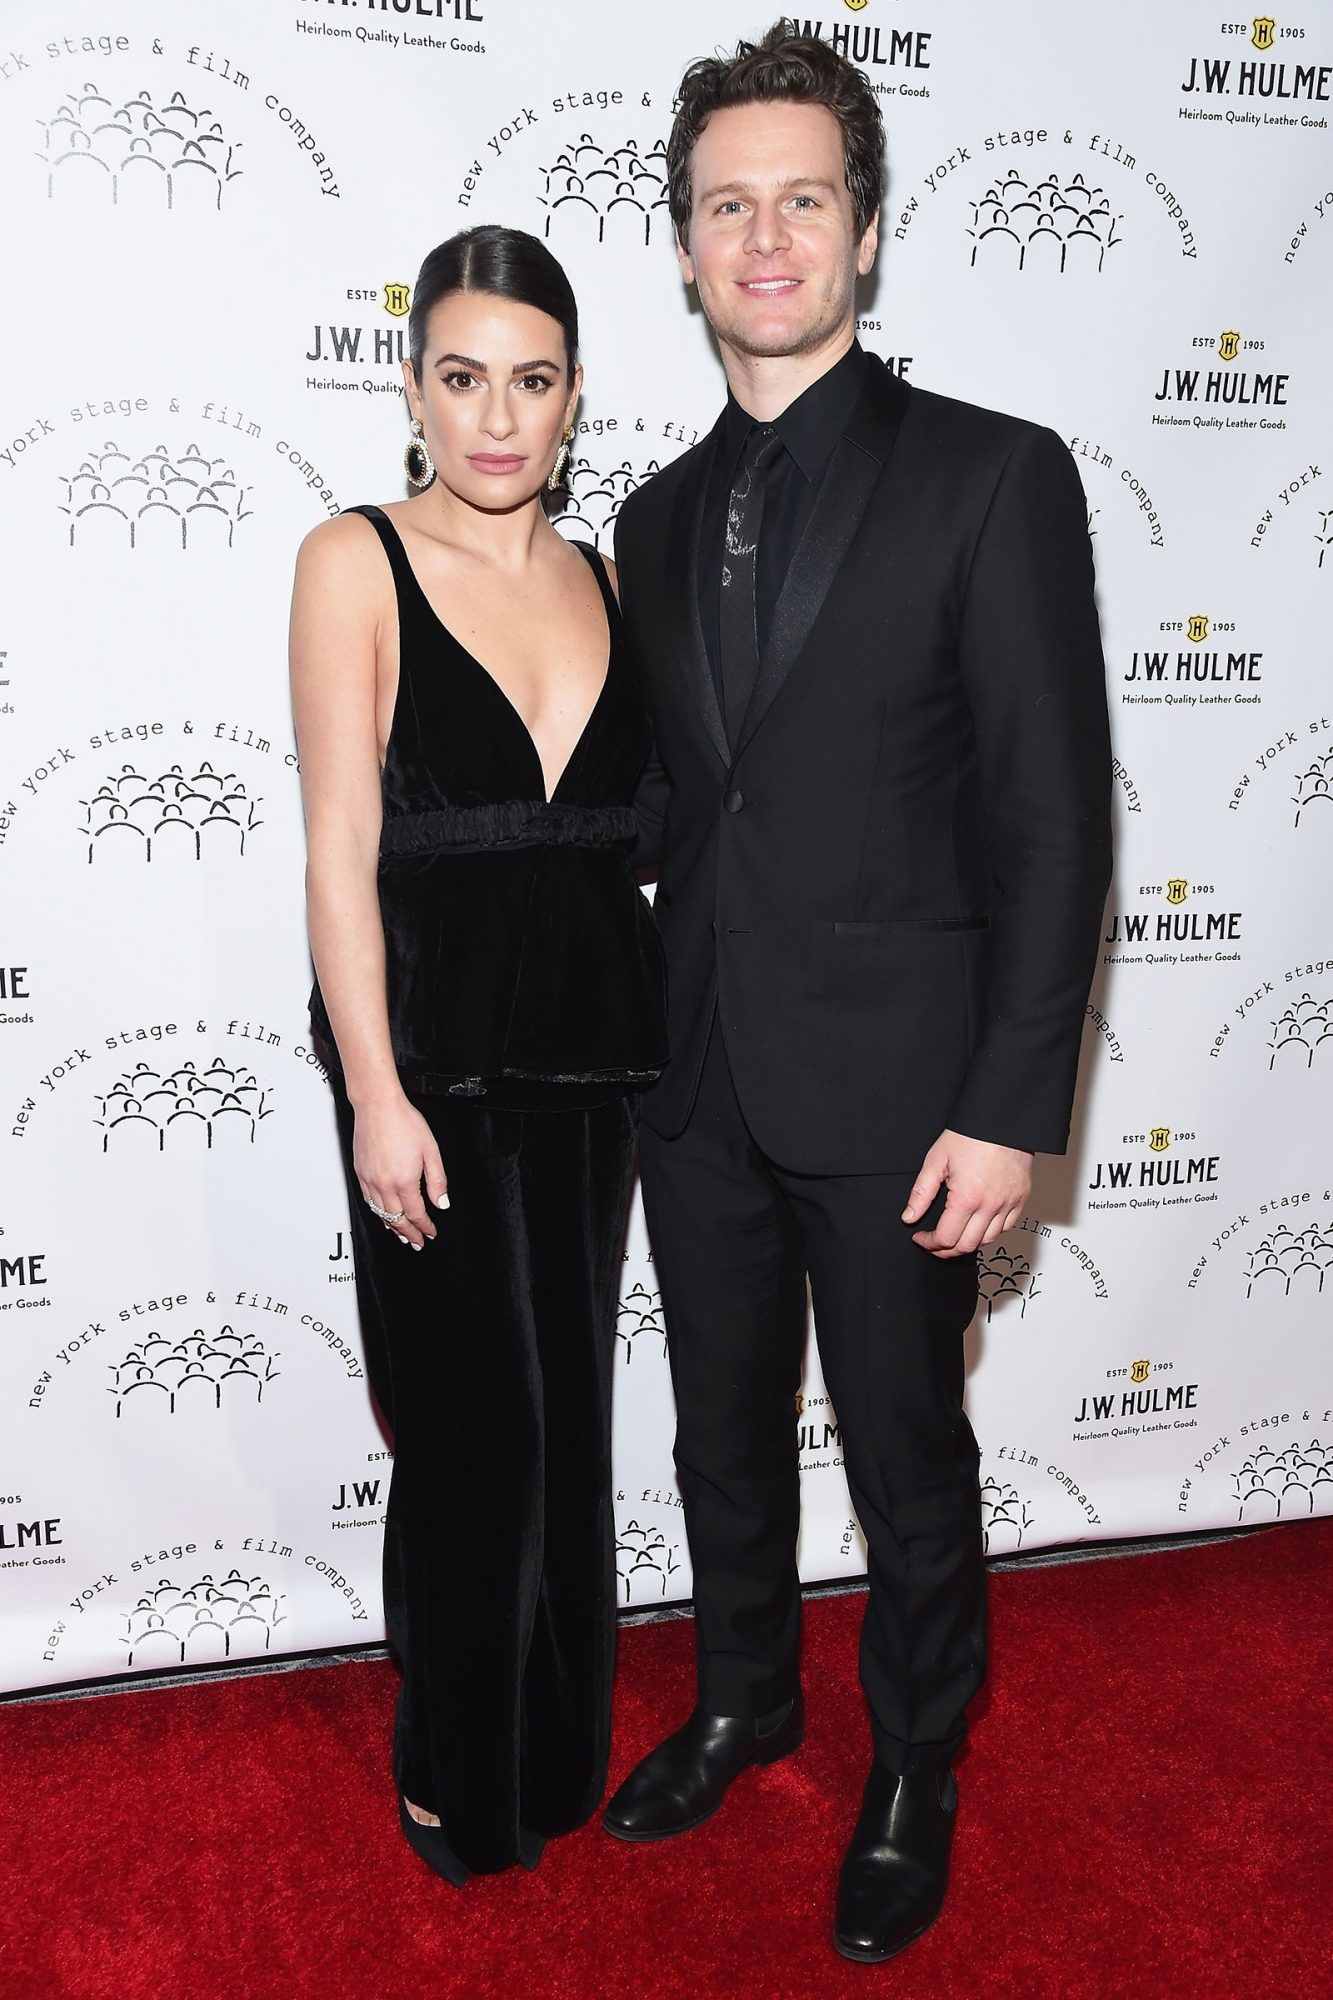 Lea Michele and Zandy Reich attend the New York Stage & Film 2019 Winter Gala at The Ziegfeld Ballroom on December 08, 2019 in New York City